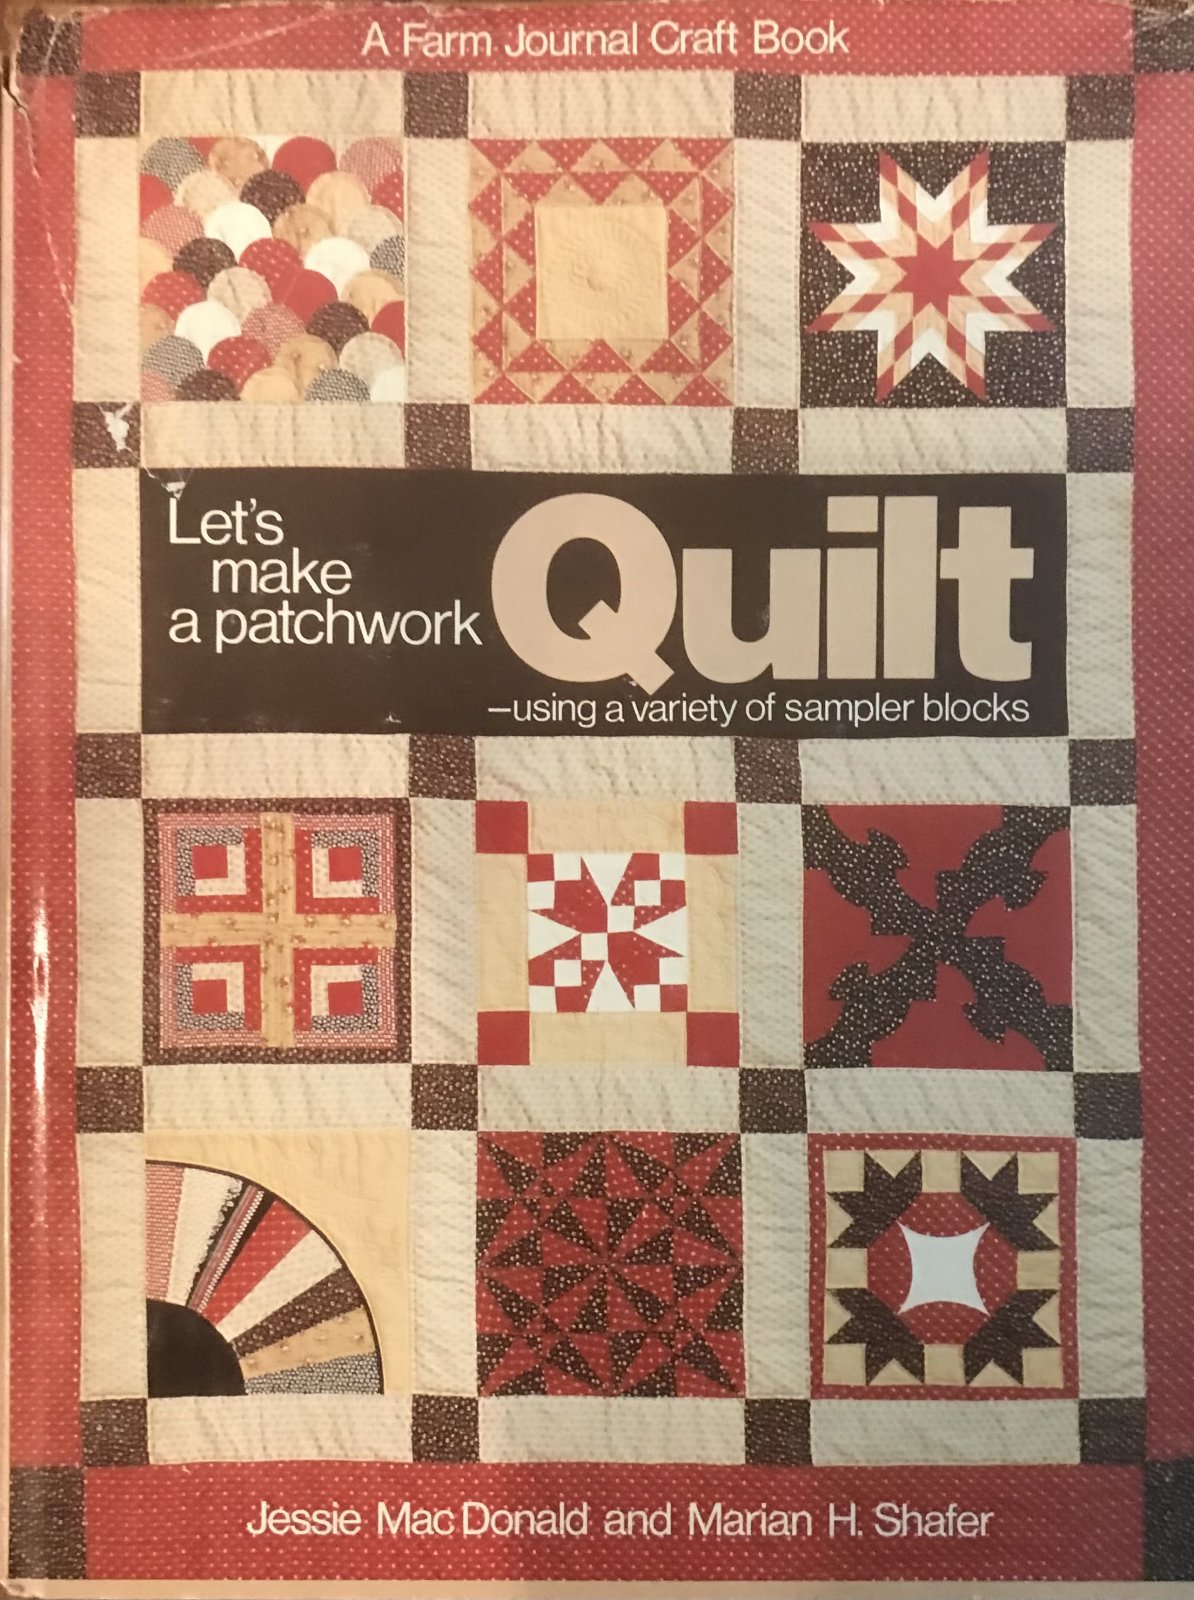 Let's Make a Patchwork Quilt: Using a Variety of Sampler Blocks (Farm journal craft books) by Jessie MacDonald and Marian H. Shafer